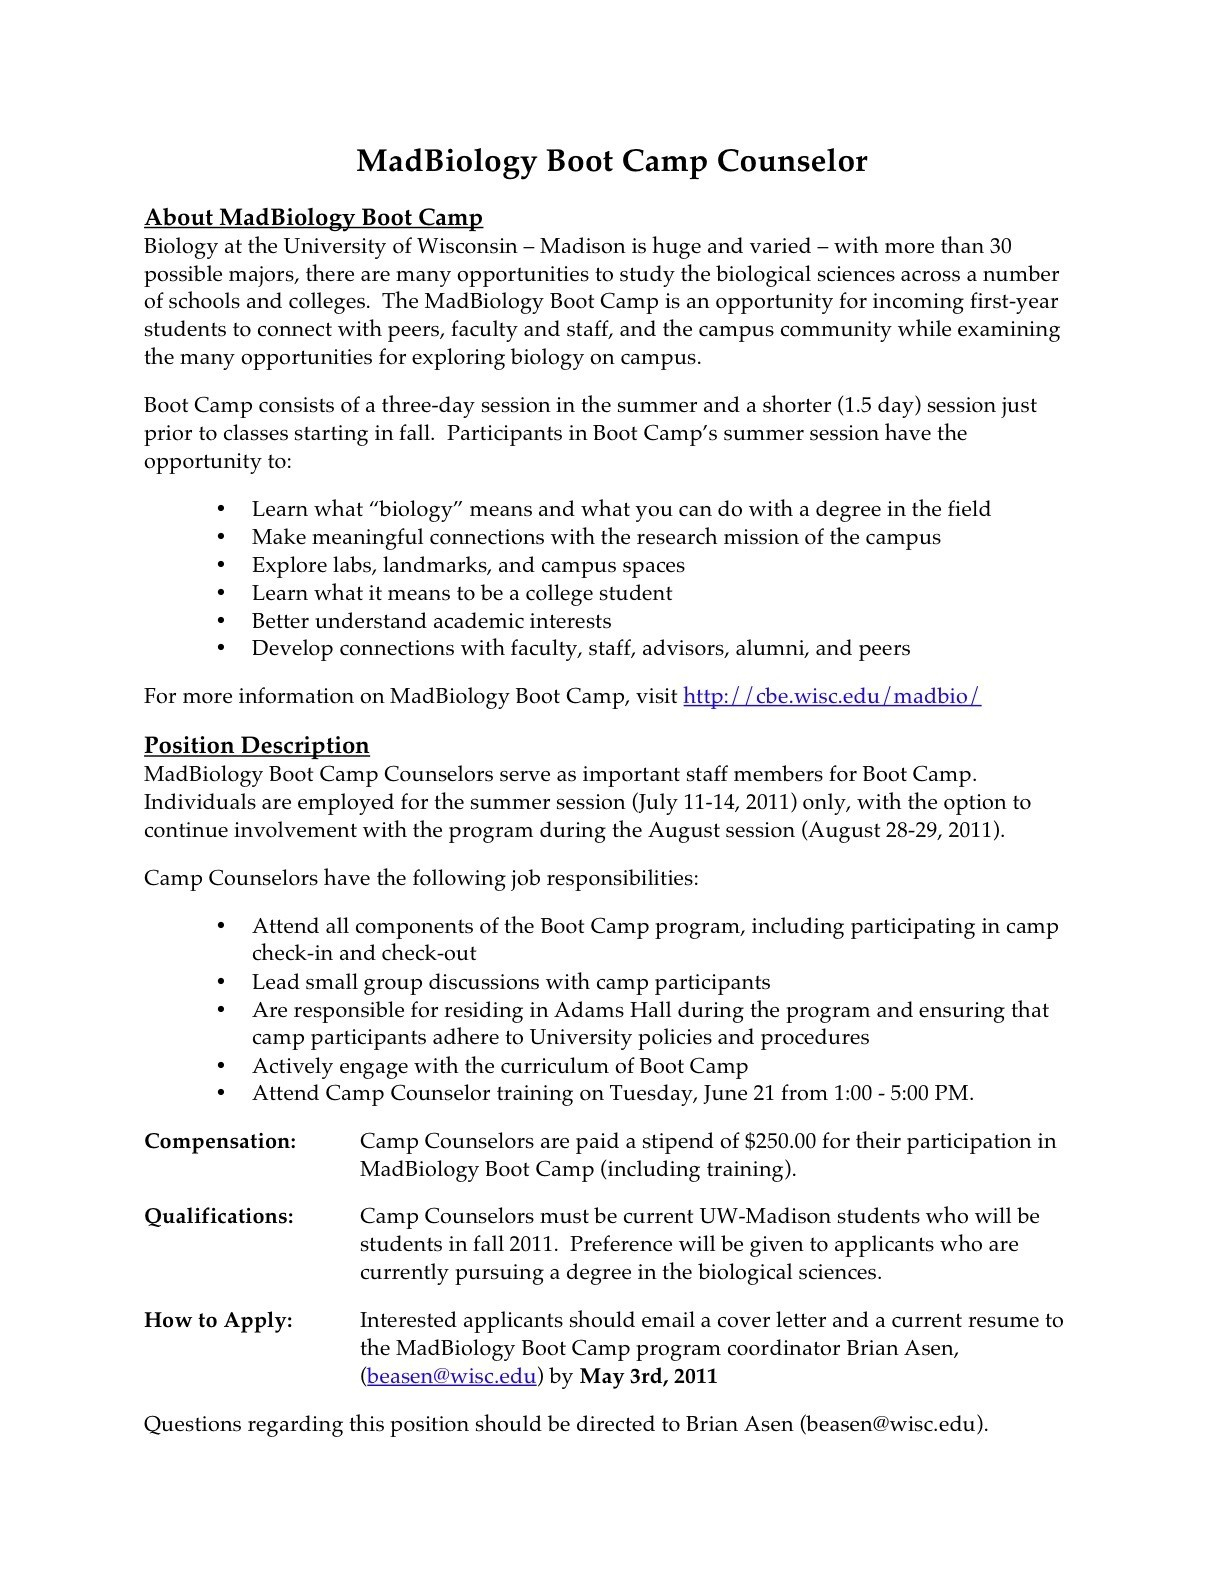 Summer Camp Counselor Responsibilities Resume - Camp Counselor Resume Inspirational Resume Examples for Youth